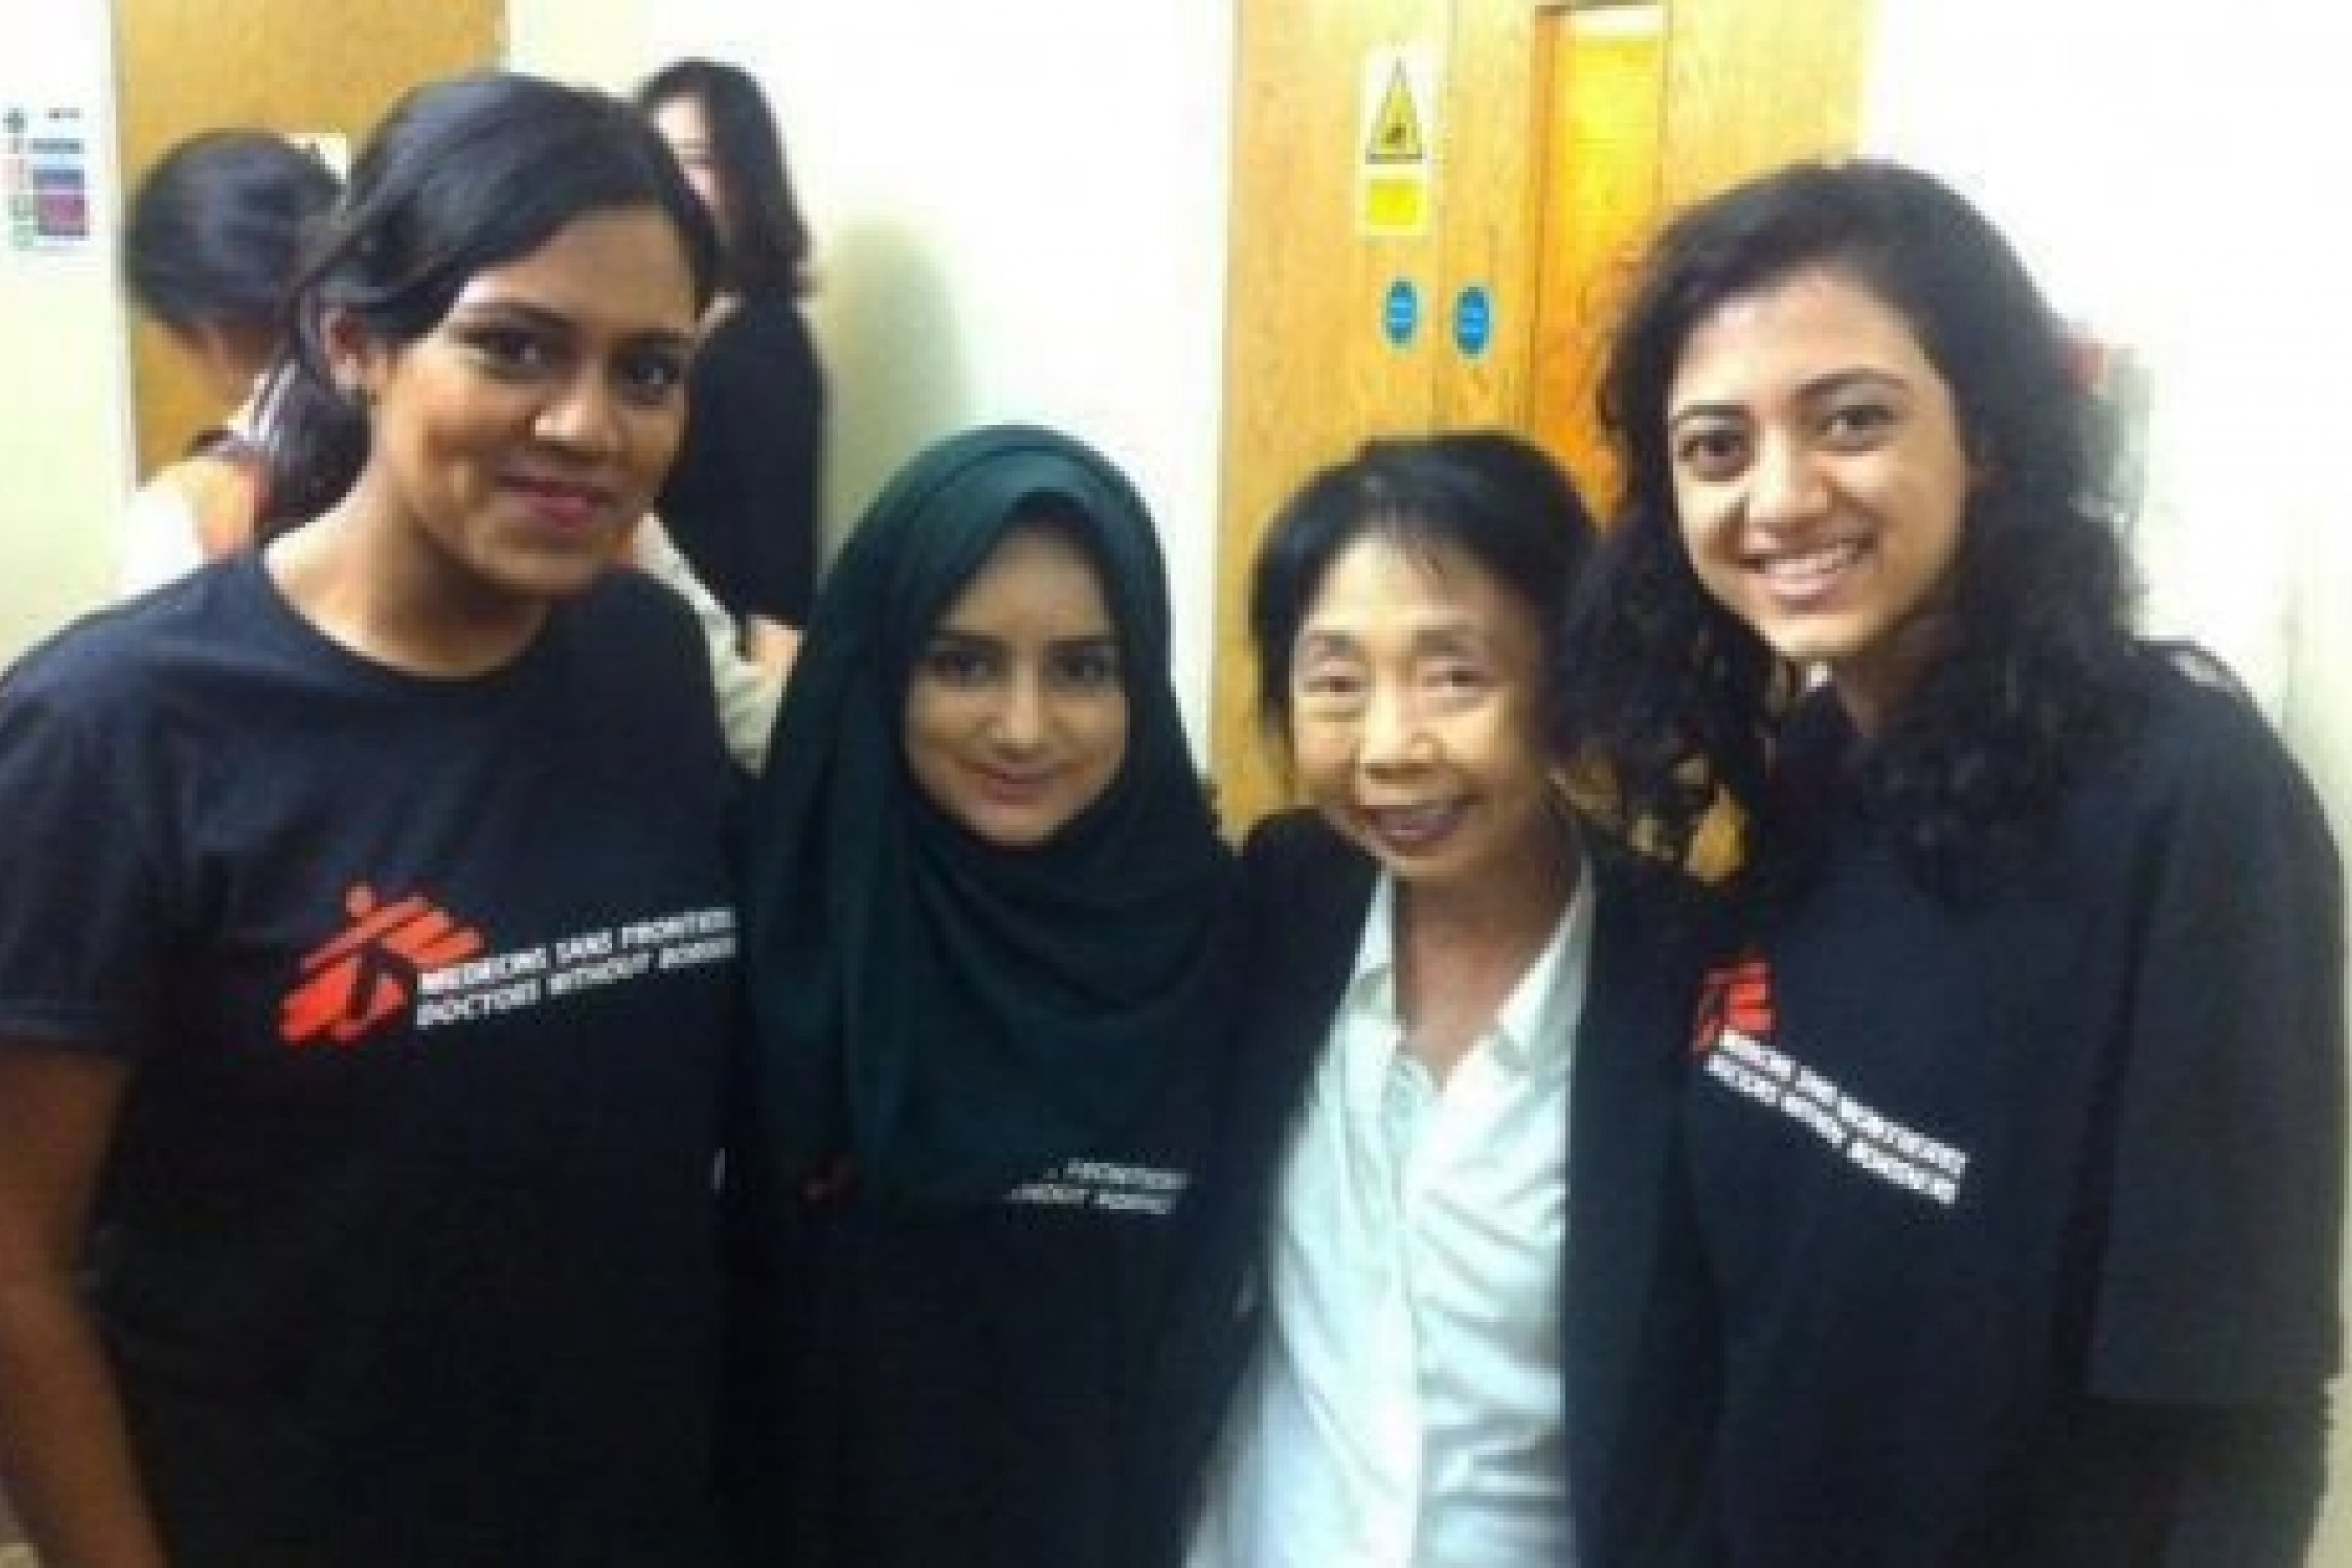 UCL Friends of MSF